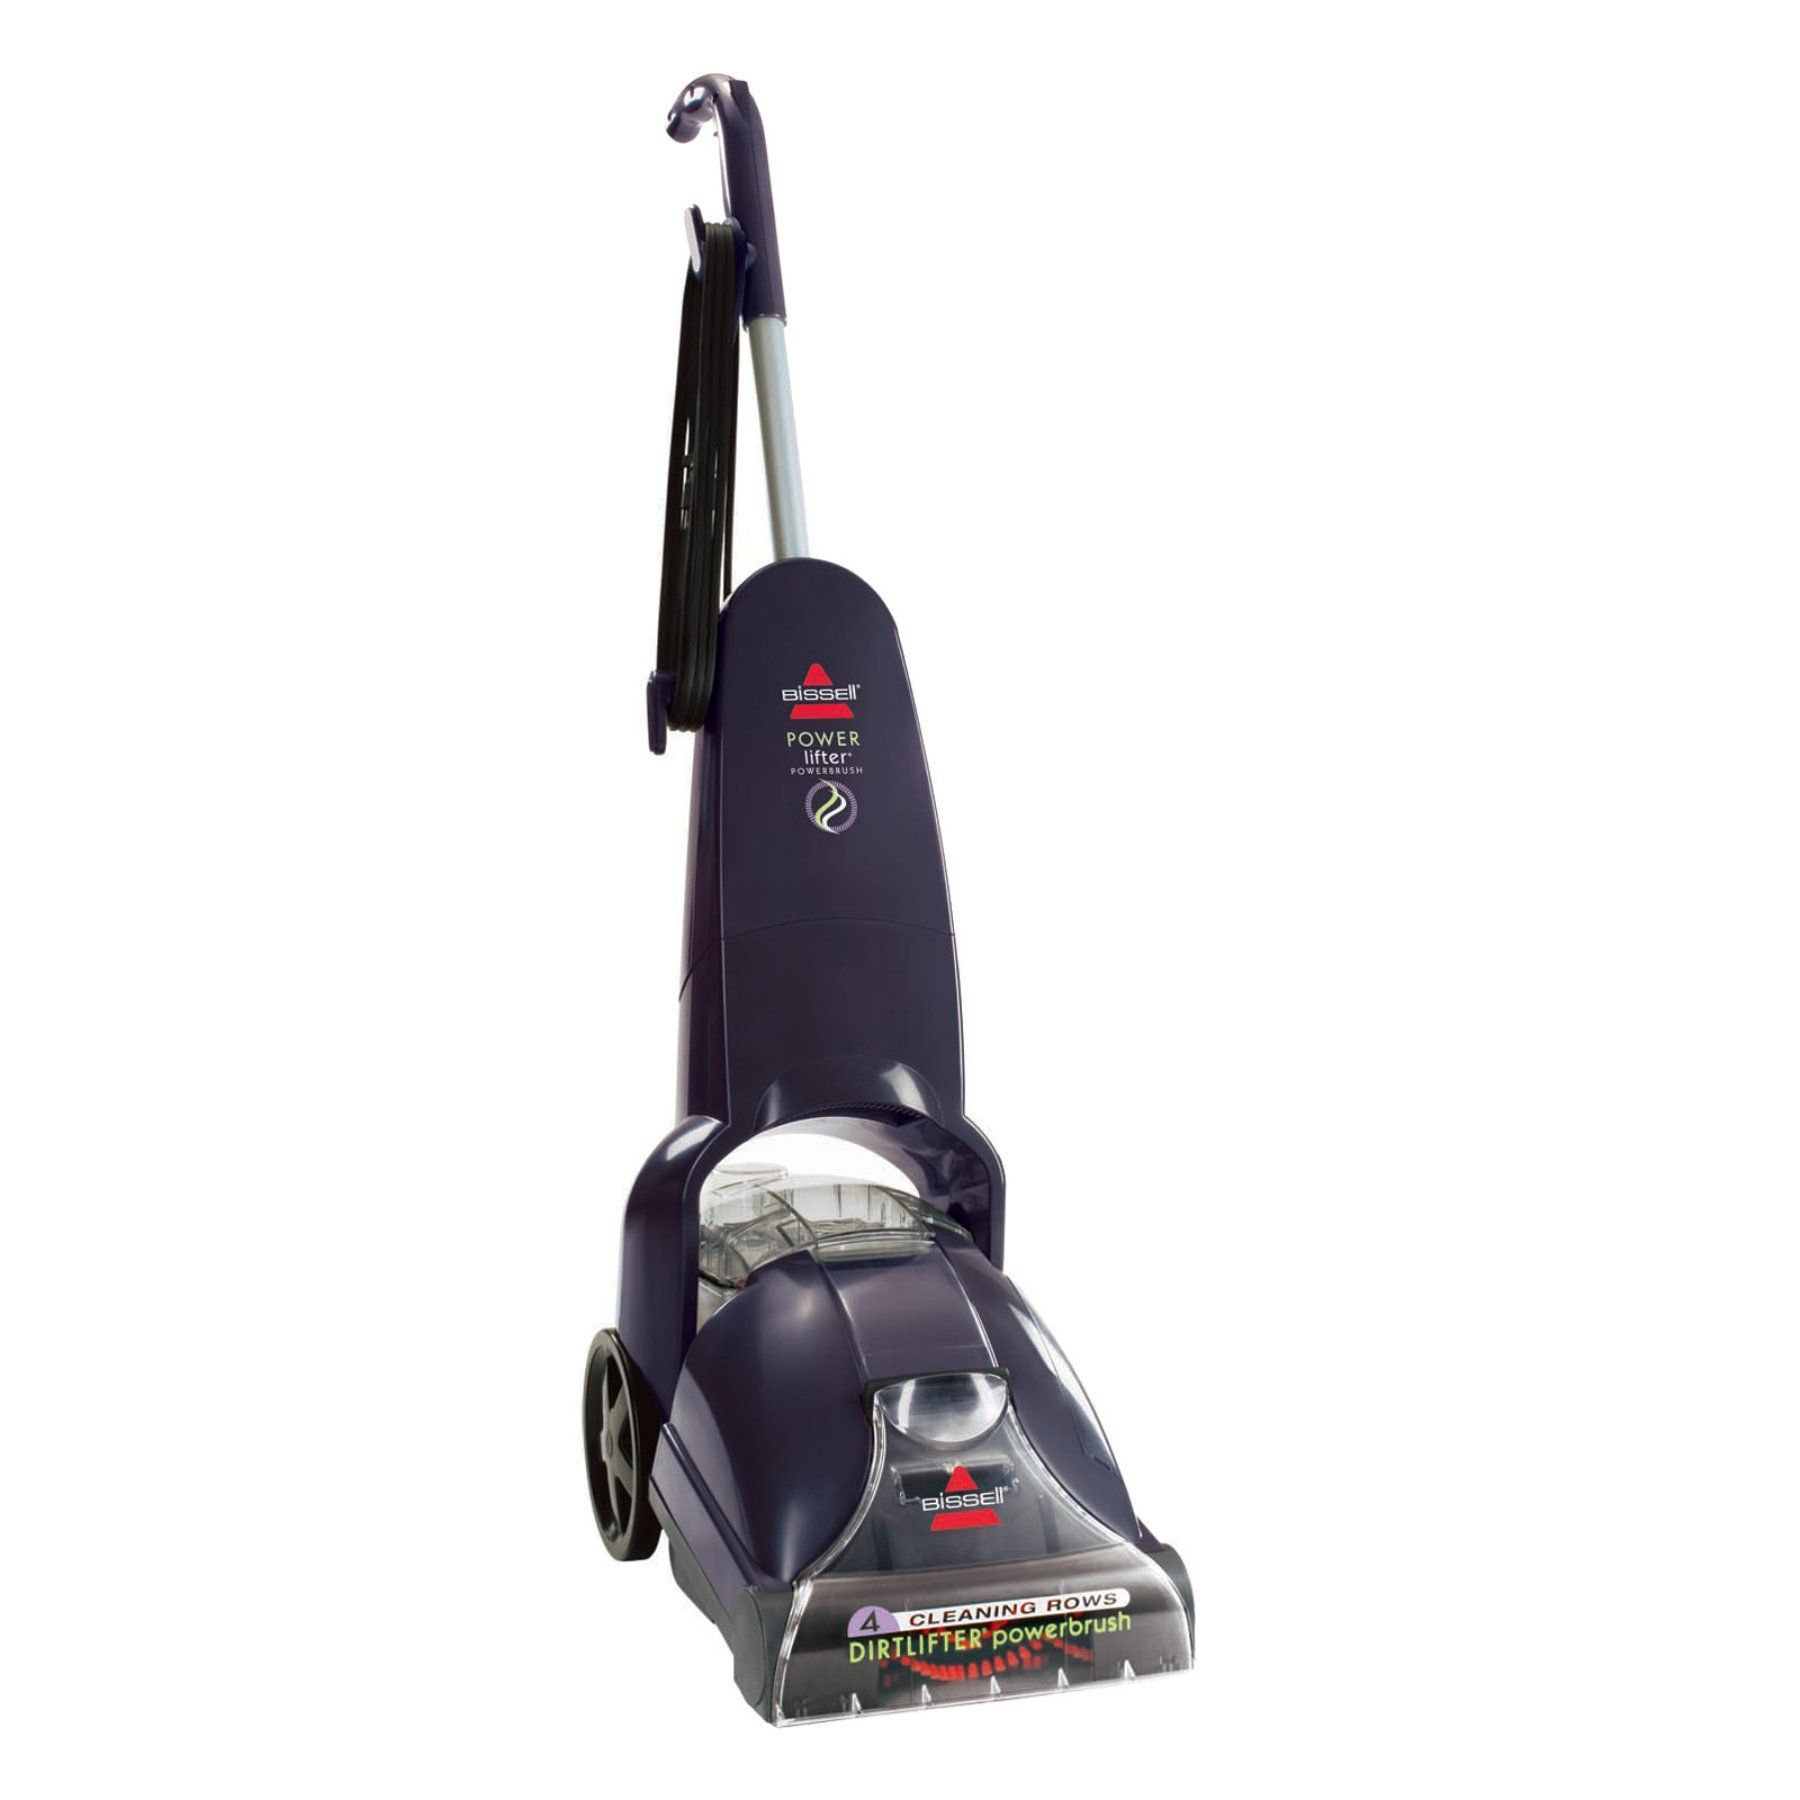 dp bissell hardfloor vacuum bagless kitchen amazon canister home cleaner floor floors expert ca